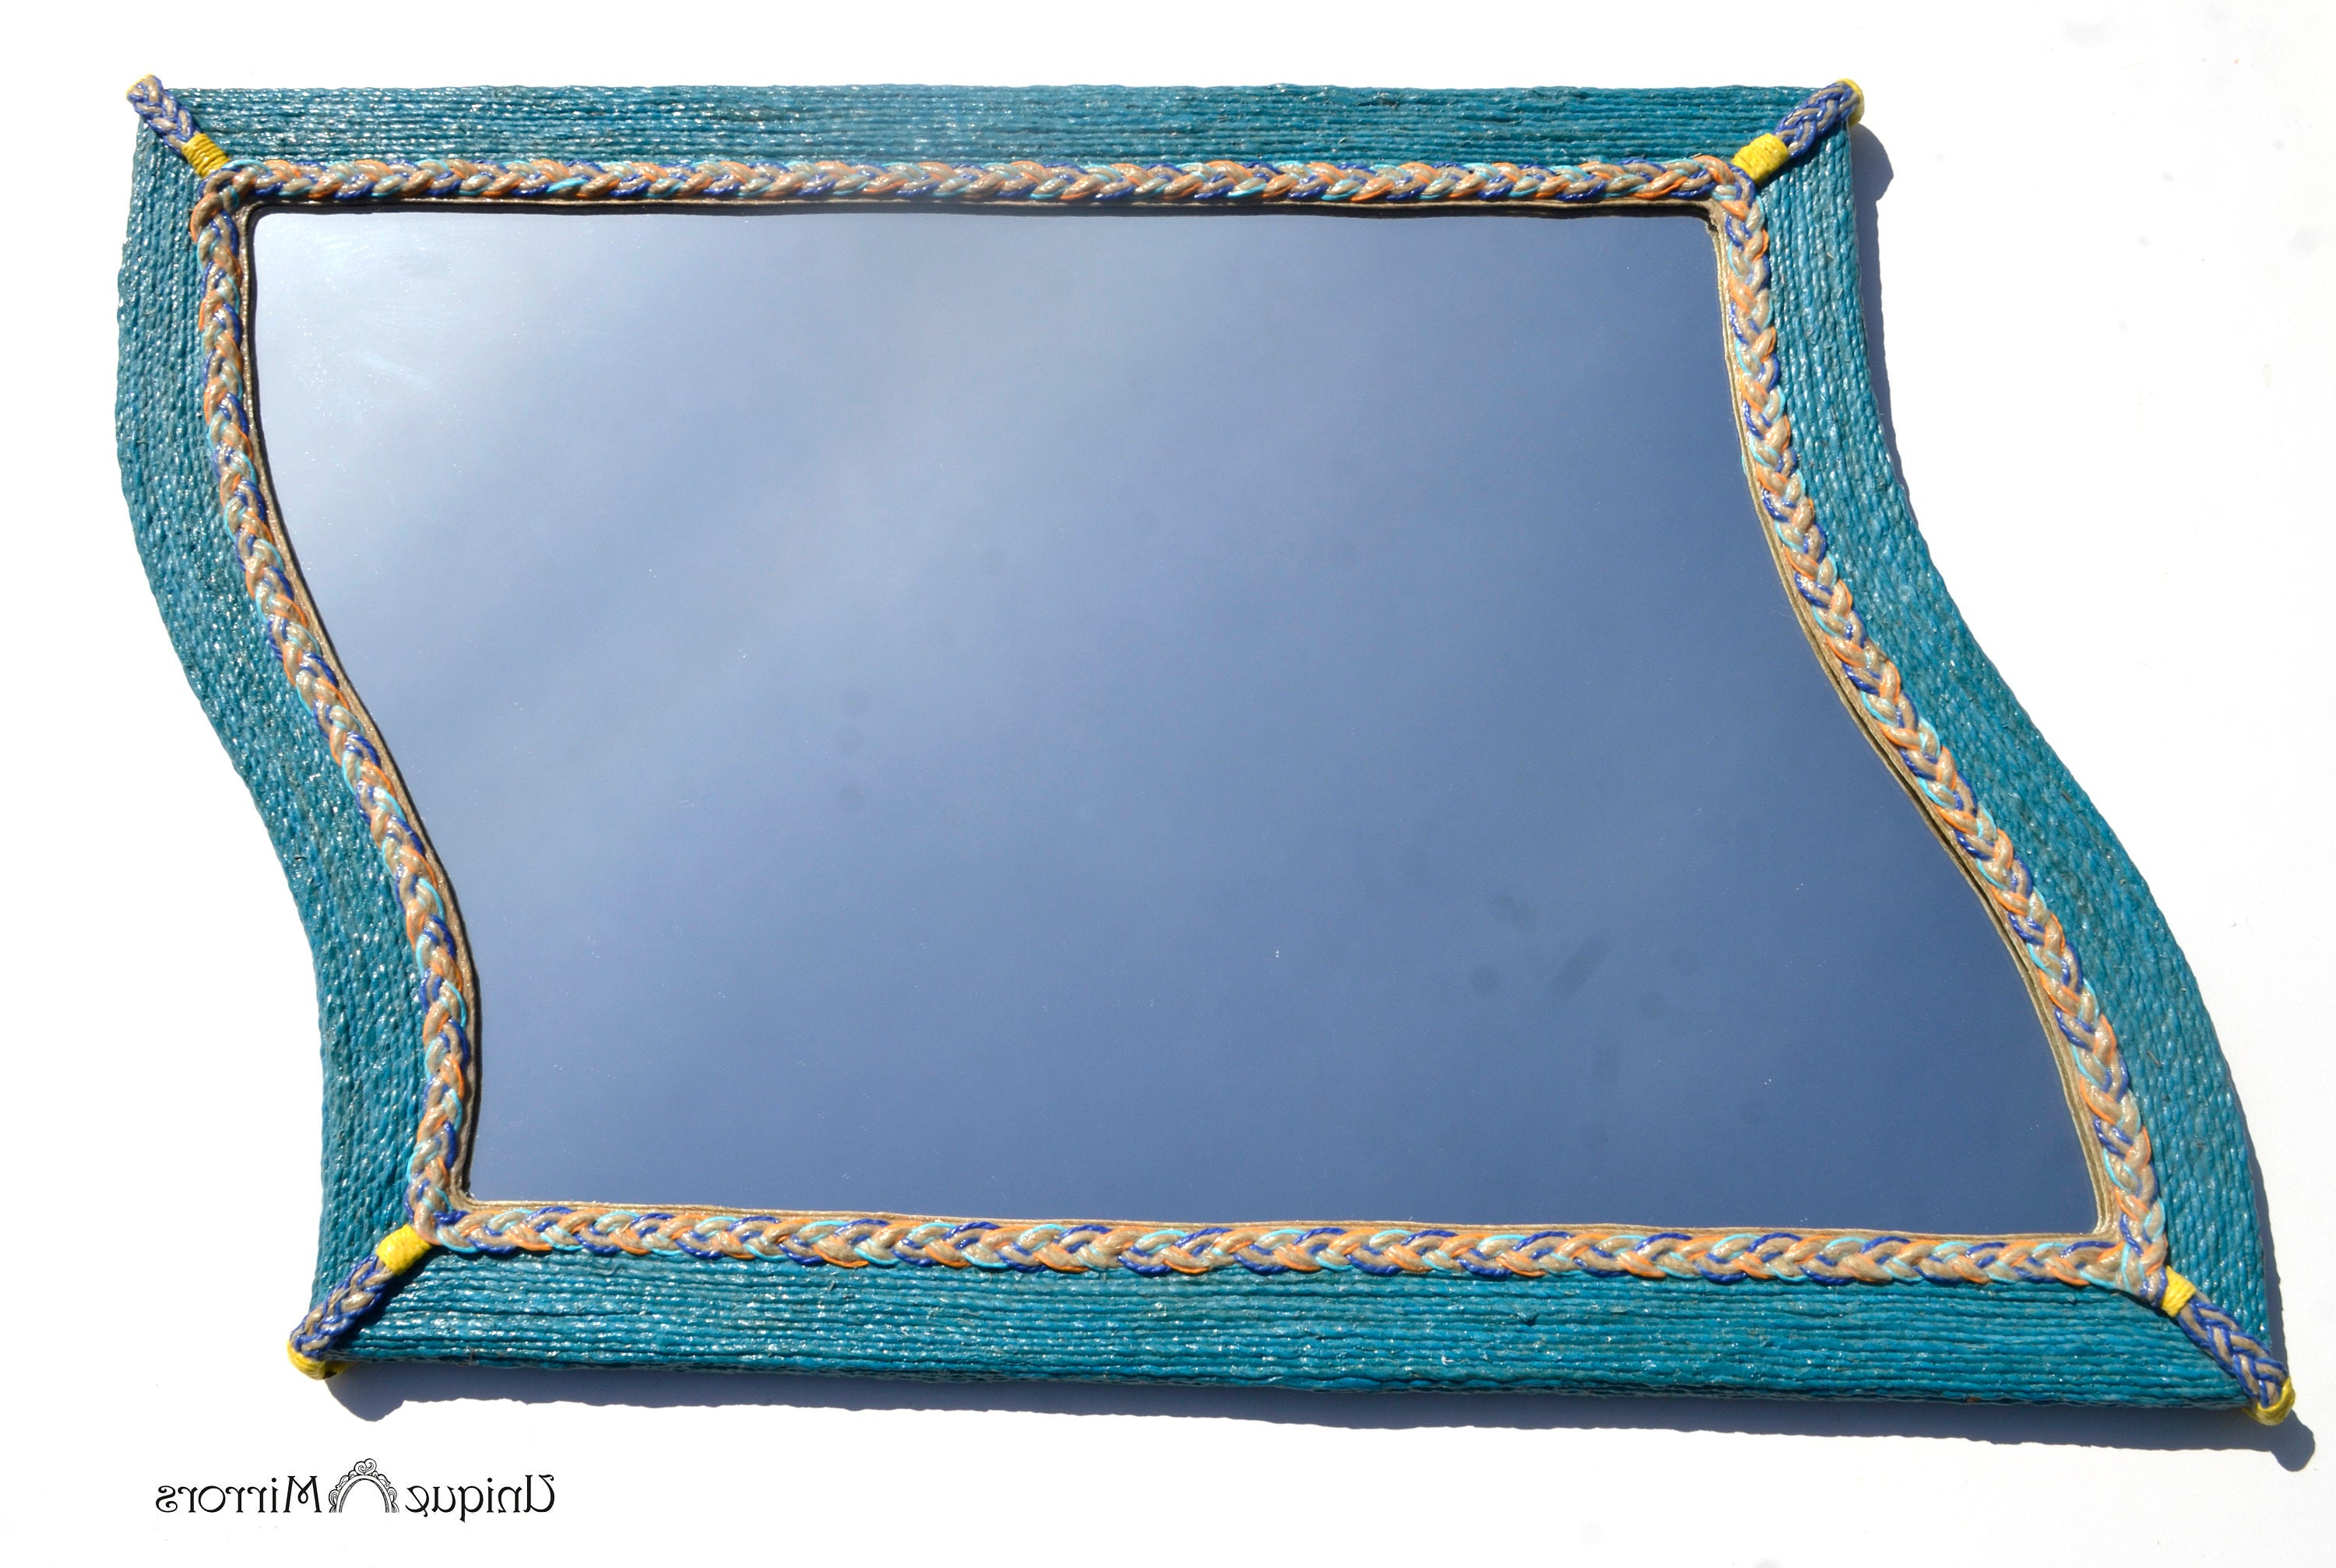 Most Recent New Home Mirror, Unusual Mirror, Wavy Mirror, Blue Abstract Mirror, Large  Wall Mirror, Hemp Rope Decor, Bathroom Mirrors, Decorative Mirrors Inside Unusual Large Wall Mirrors (View 10 of 20)